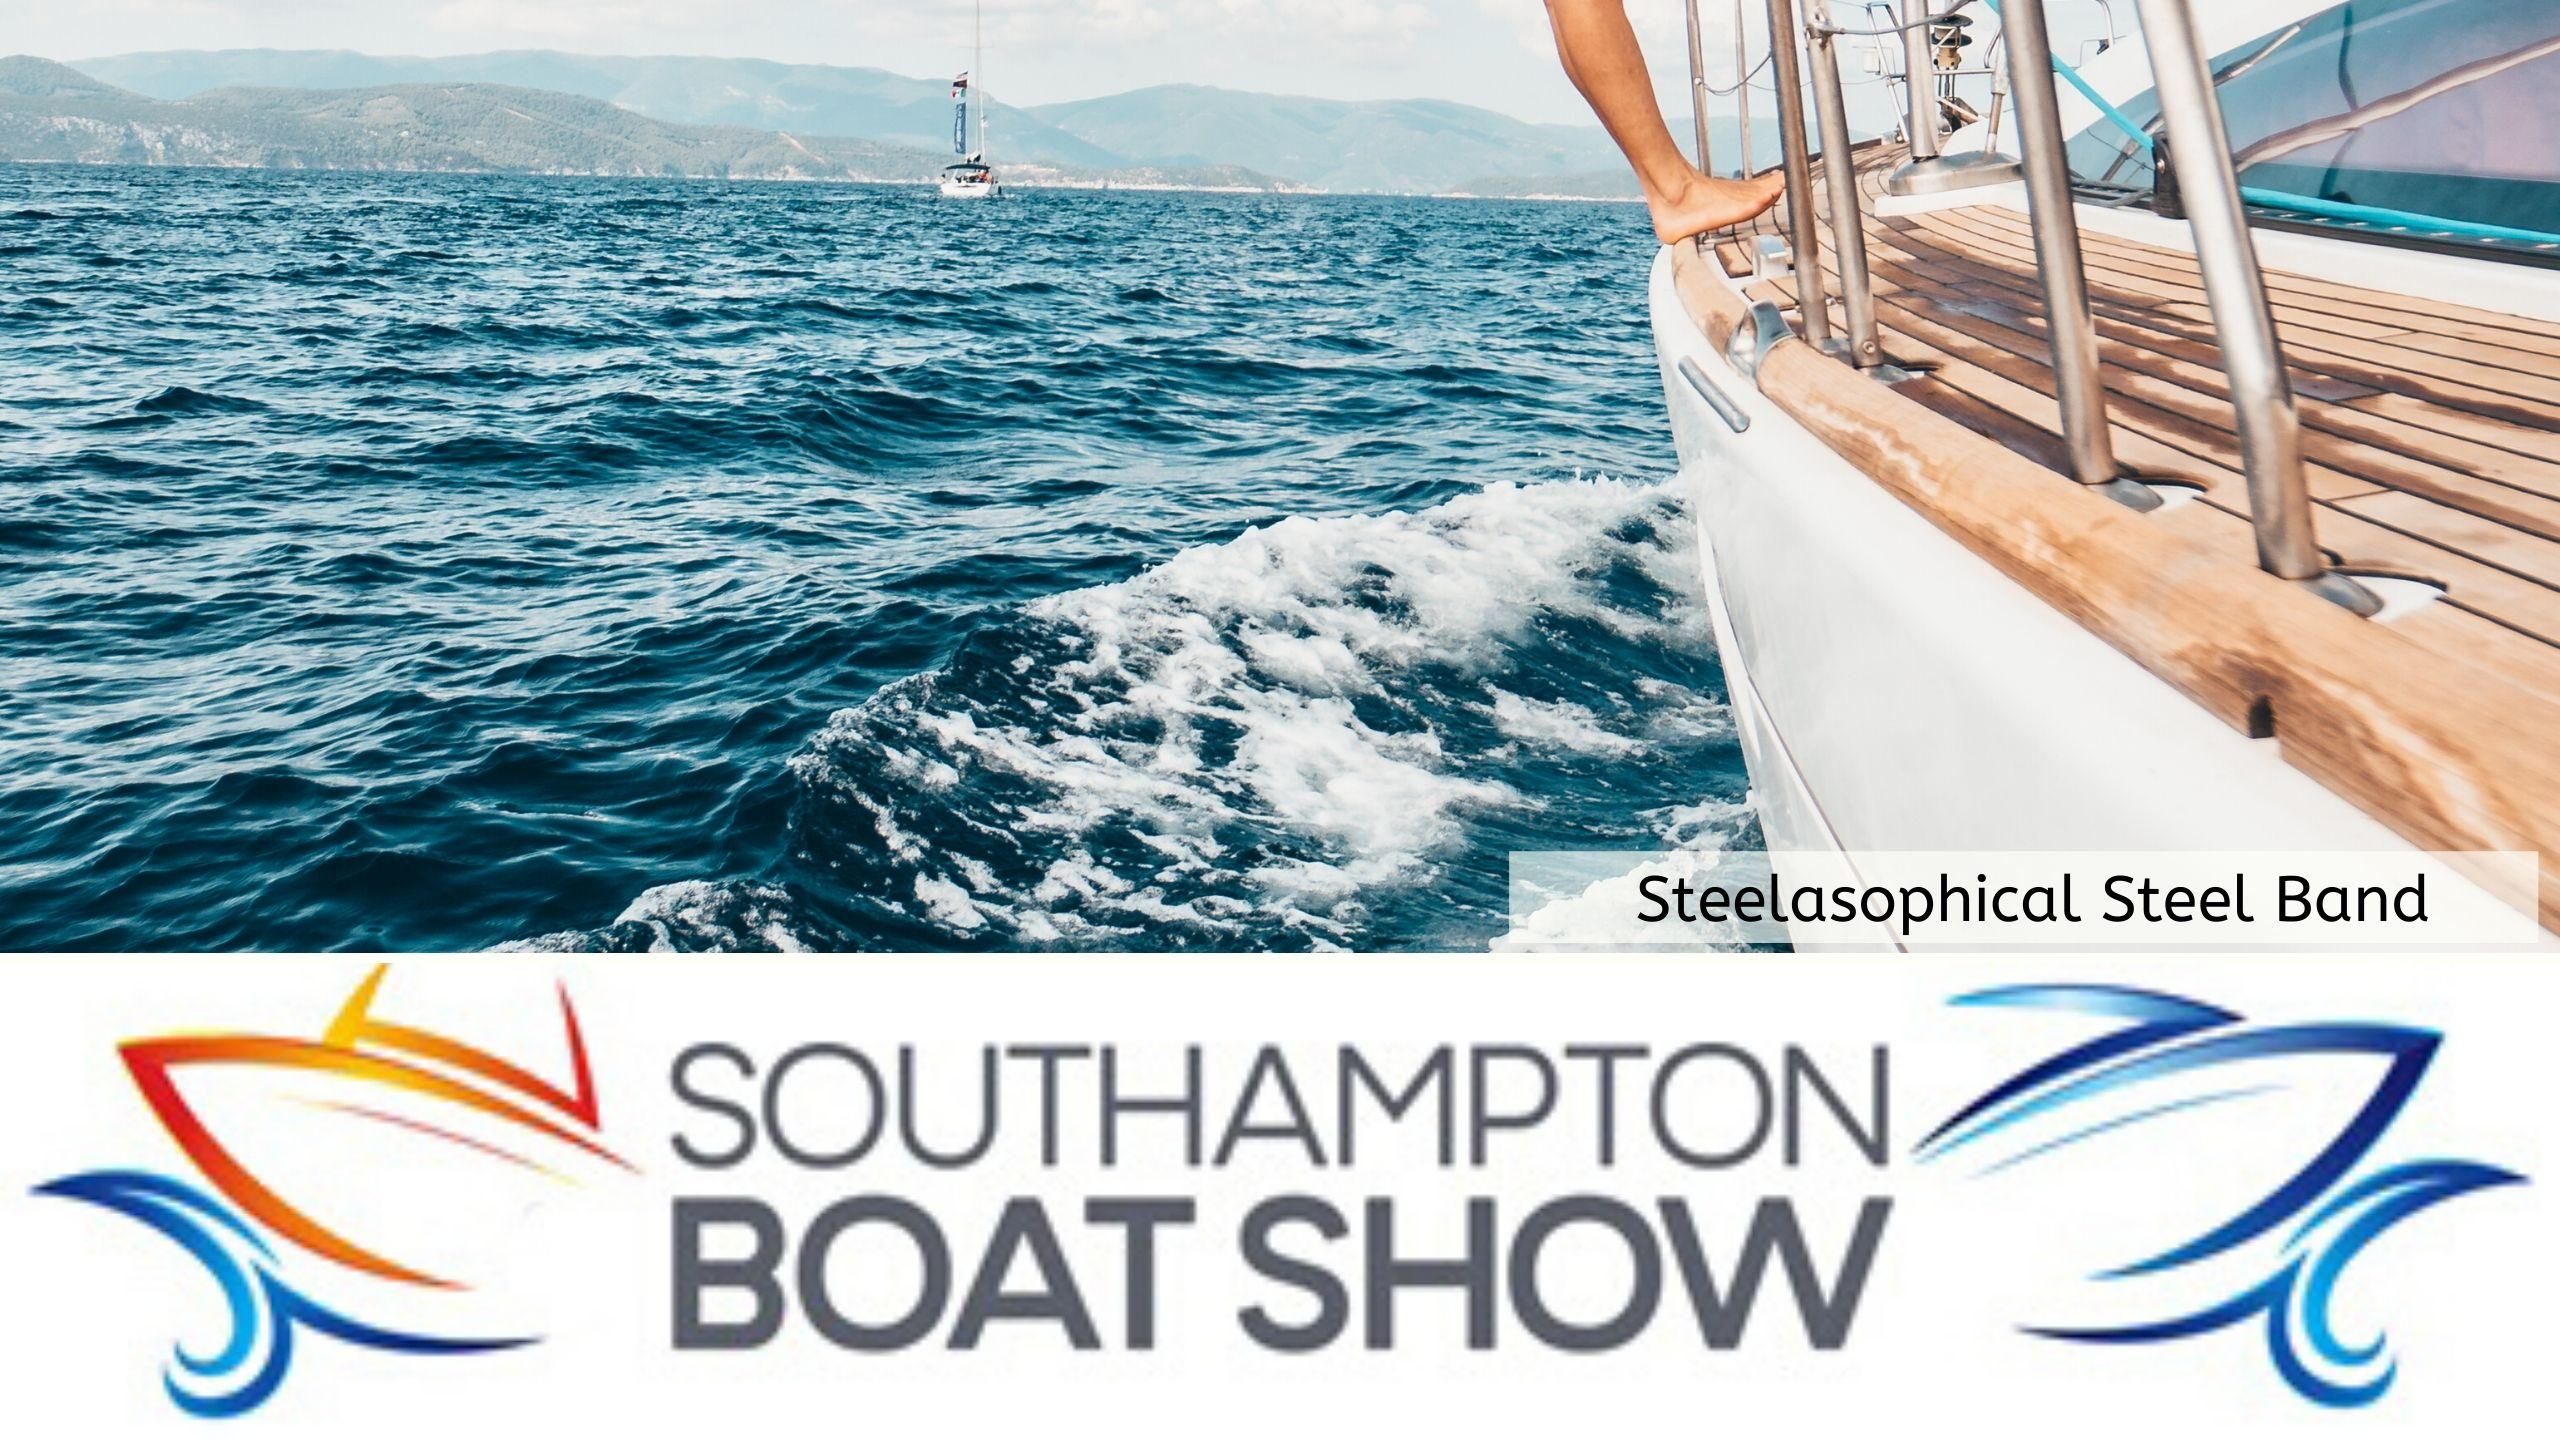 Steelasophical Steel Band Southampton Boat Show Yacht Market Music Stage 22eee